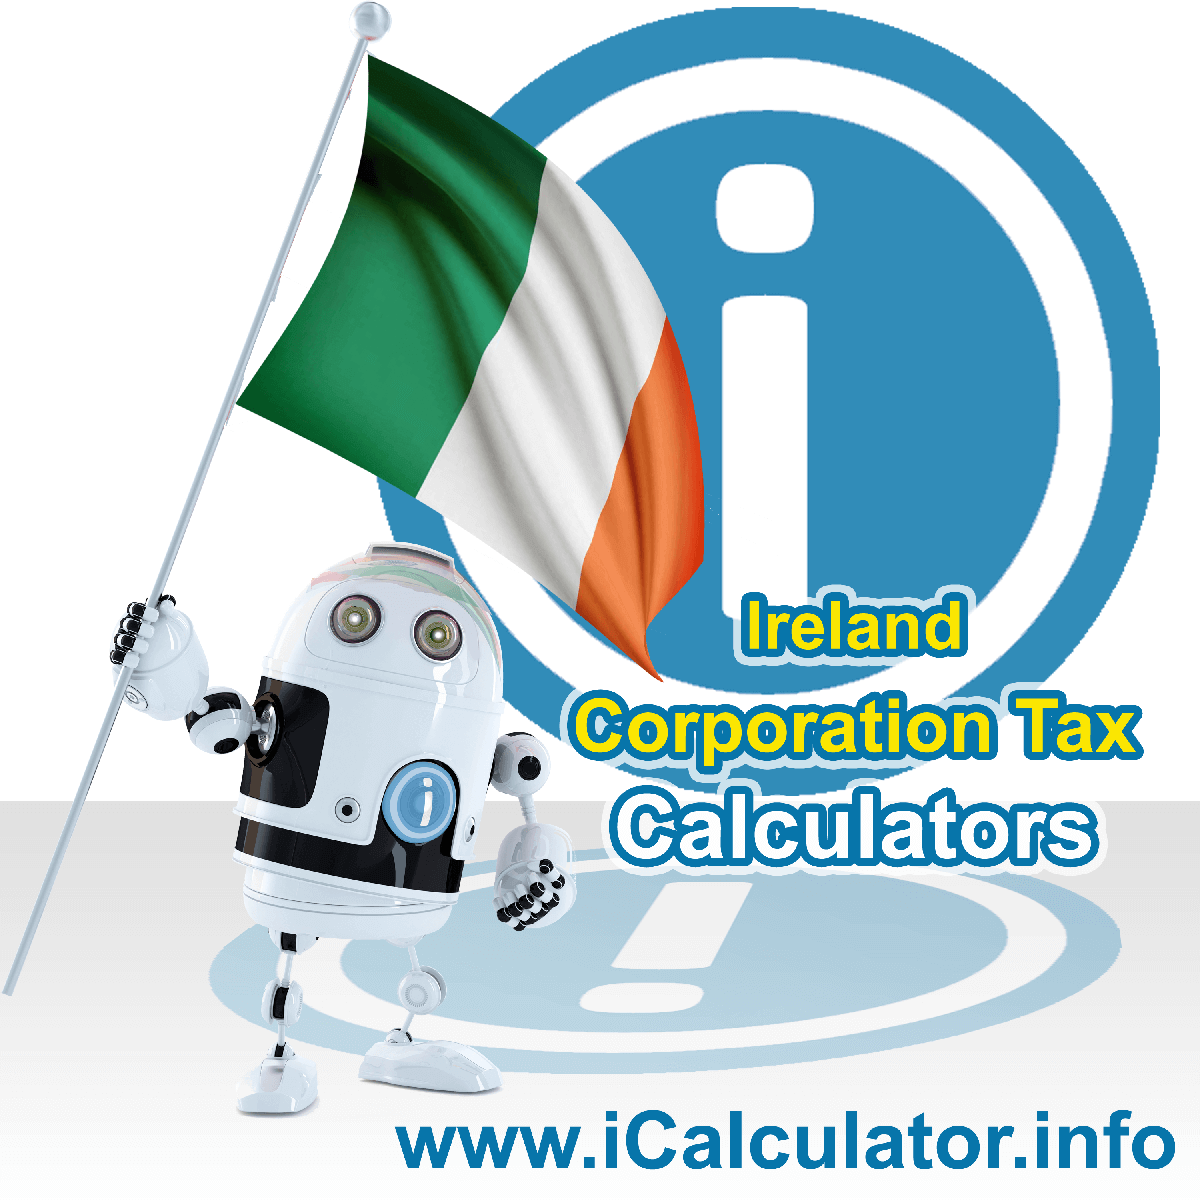 Ireland Corporation Tax Calculator. This image shows the Ireland flag and information relating to the corporation tax rate formula used for calculating Corporation Tax in Ireland using the Ireland Corporation Tax Calculator in 2021